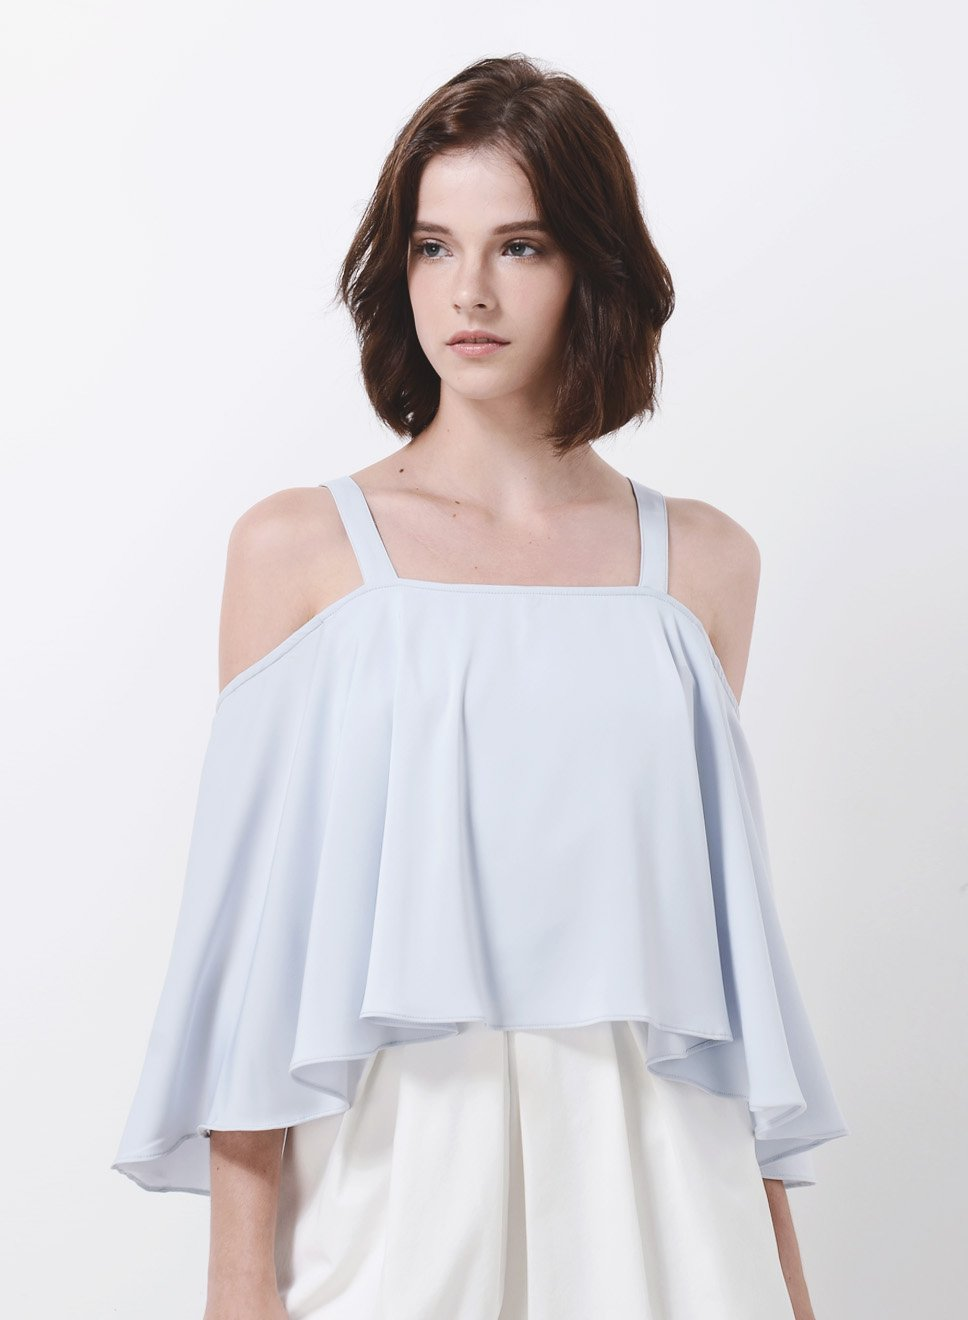 WAVE Cold Shoulder Flare Top (Sky) at $ 15.20 only sold at And Well Dressed Online Fashion Store Singapore